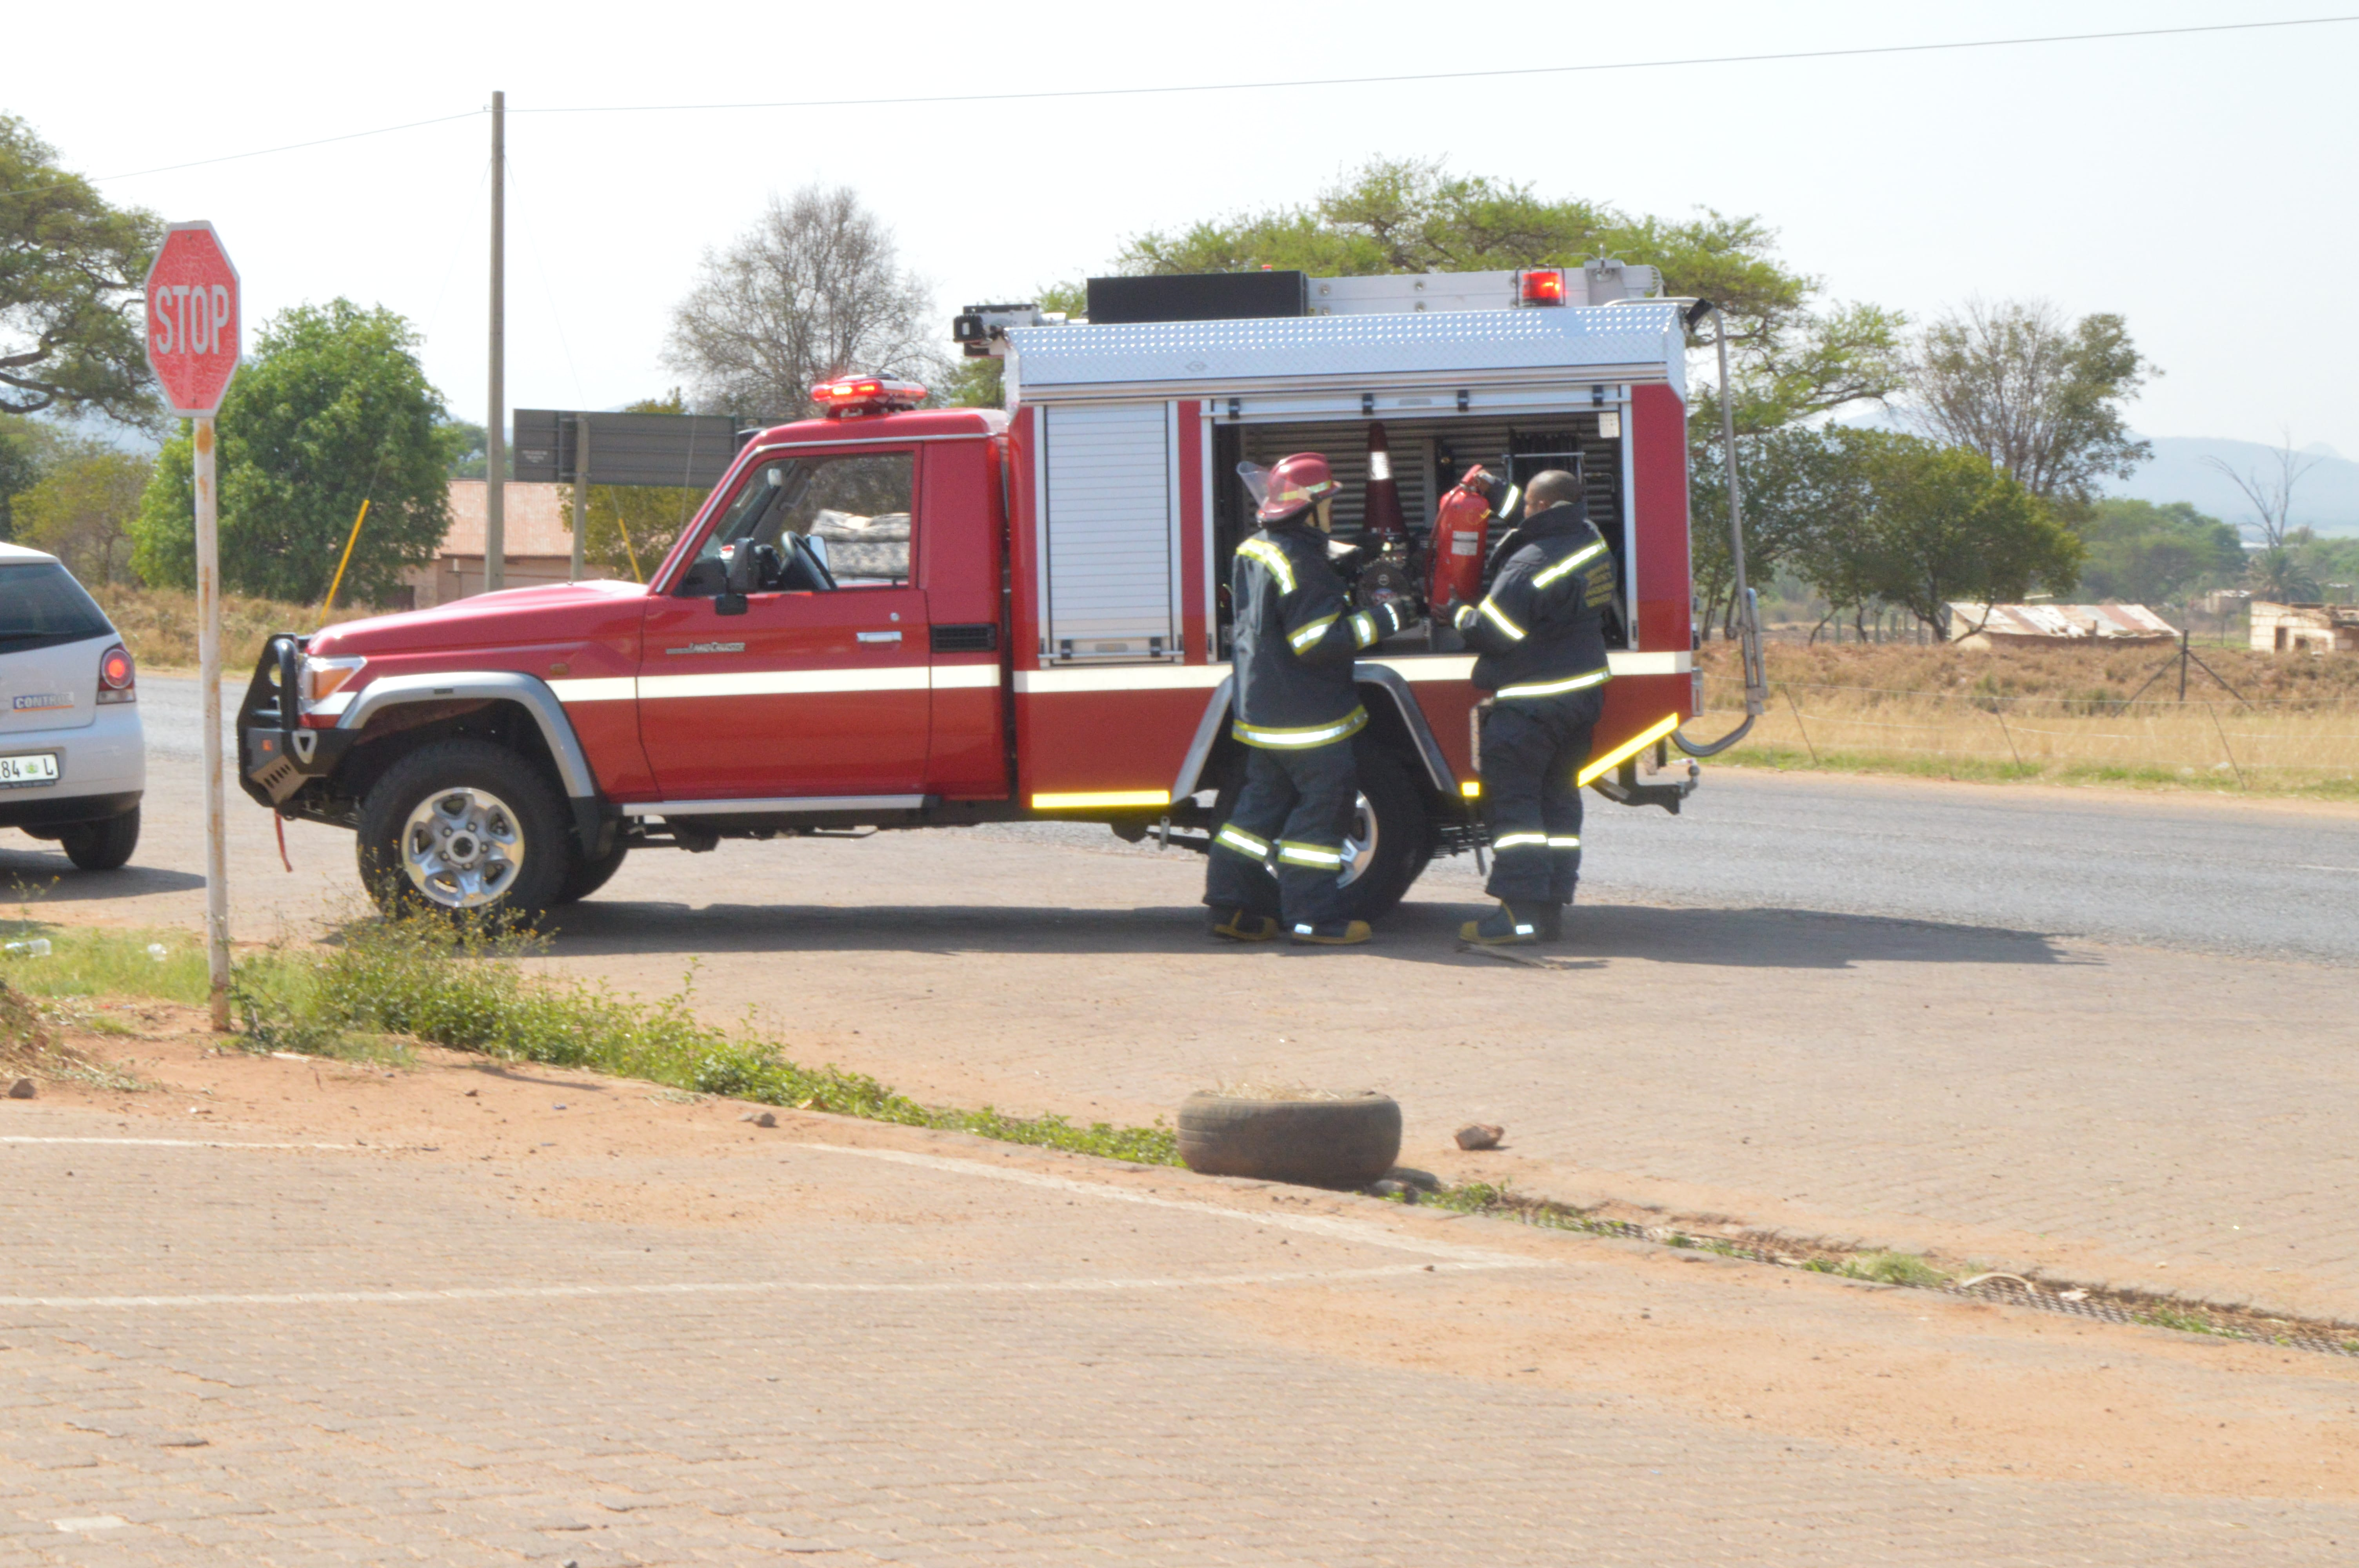 One of the RIV firefighting units delivered to Sekhukhune Municipality by Amasondo Fleet Services